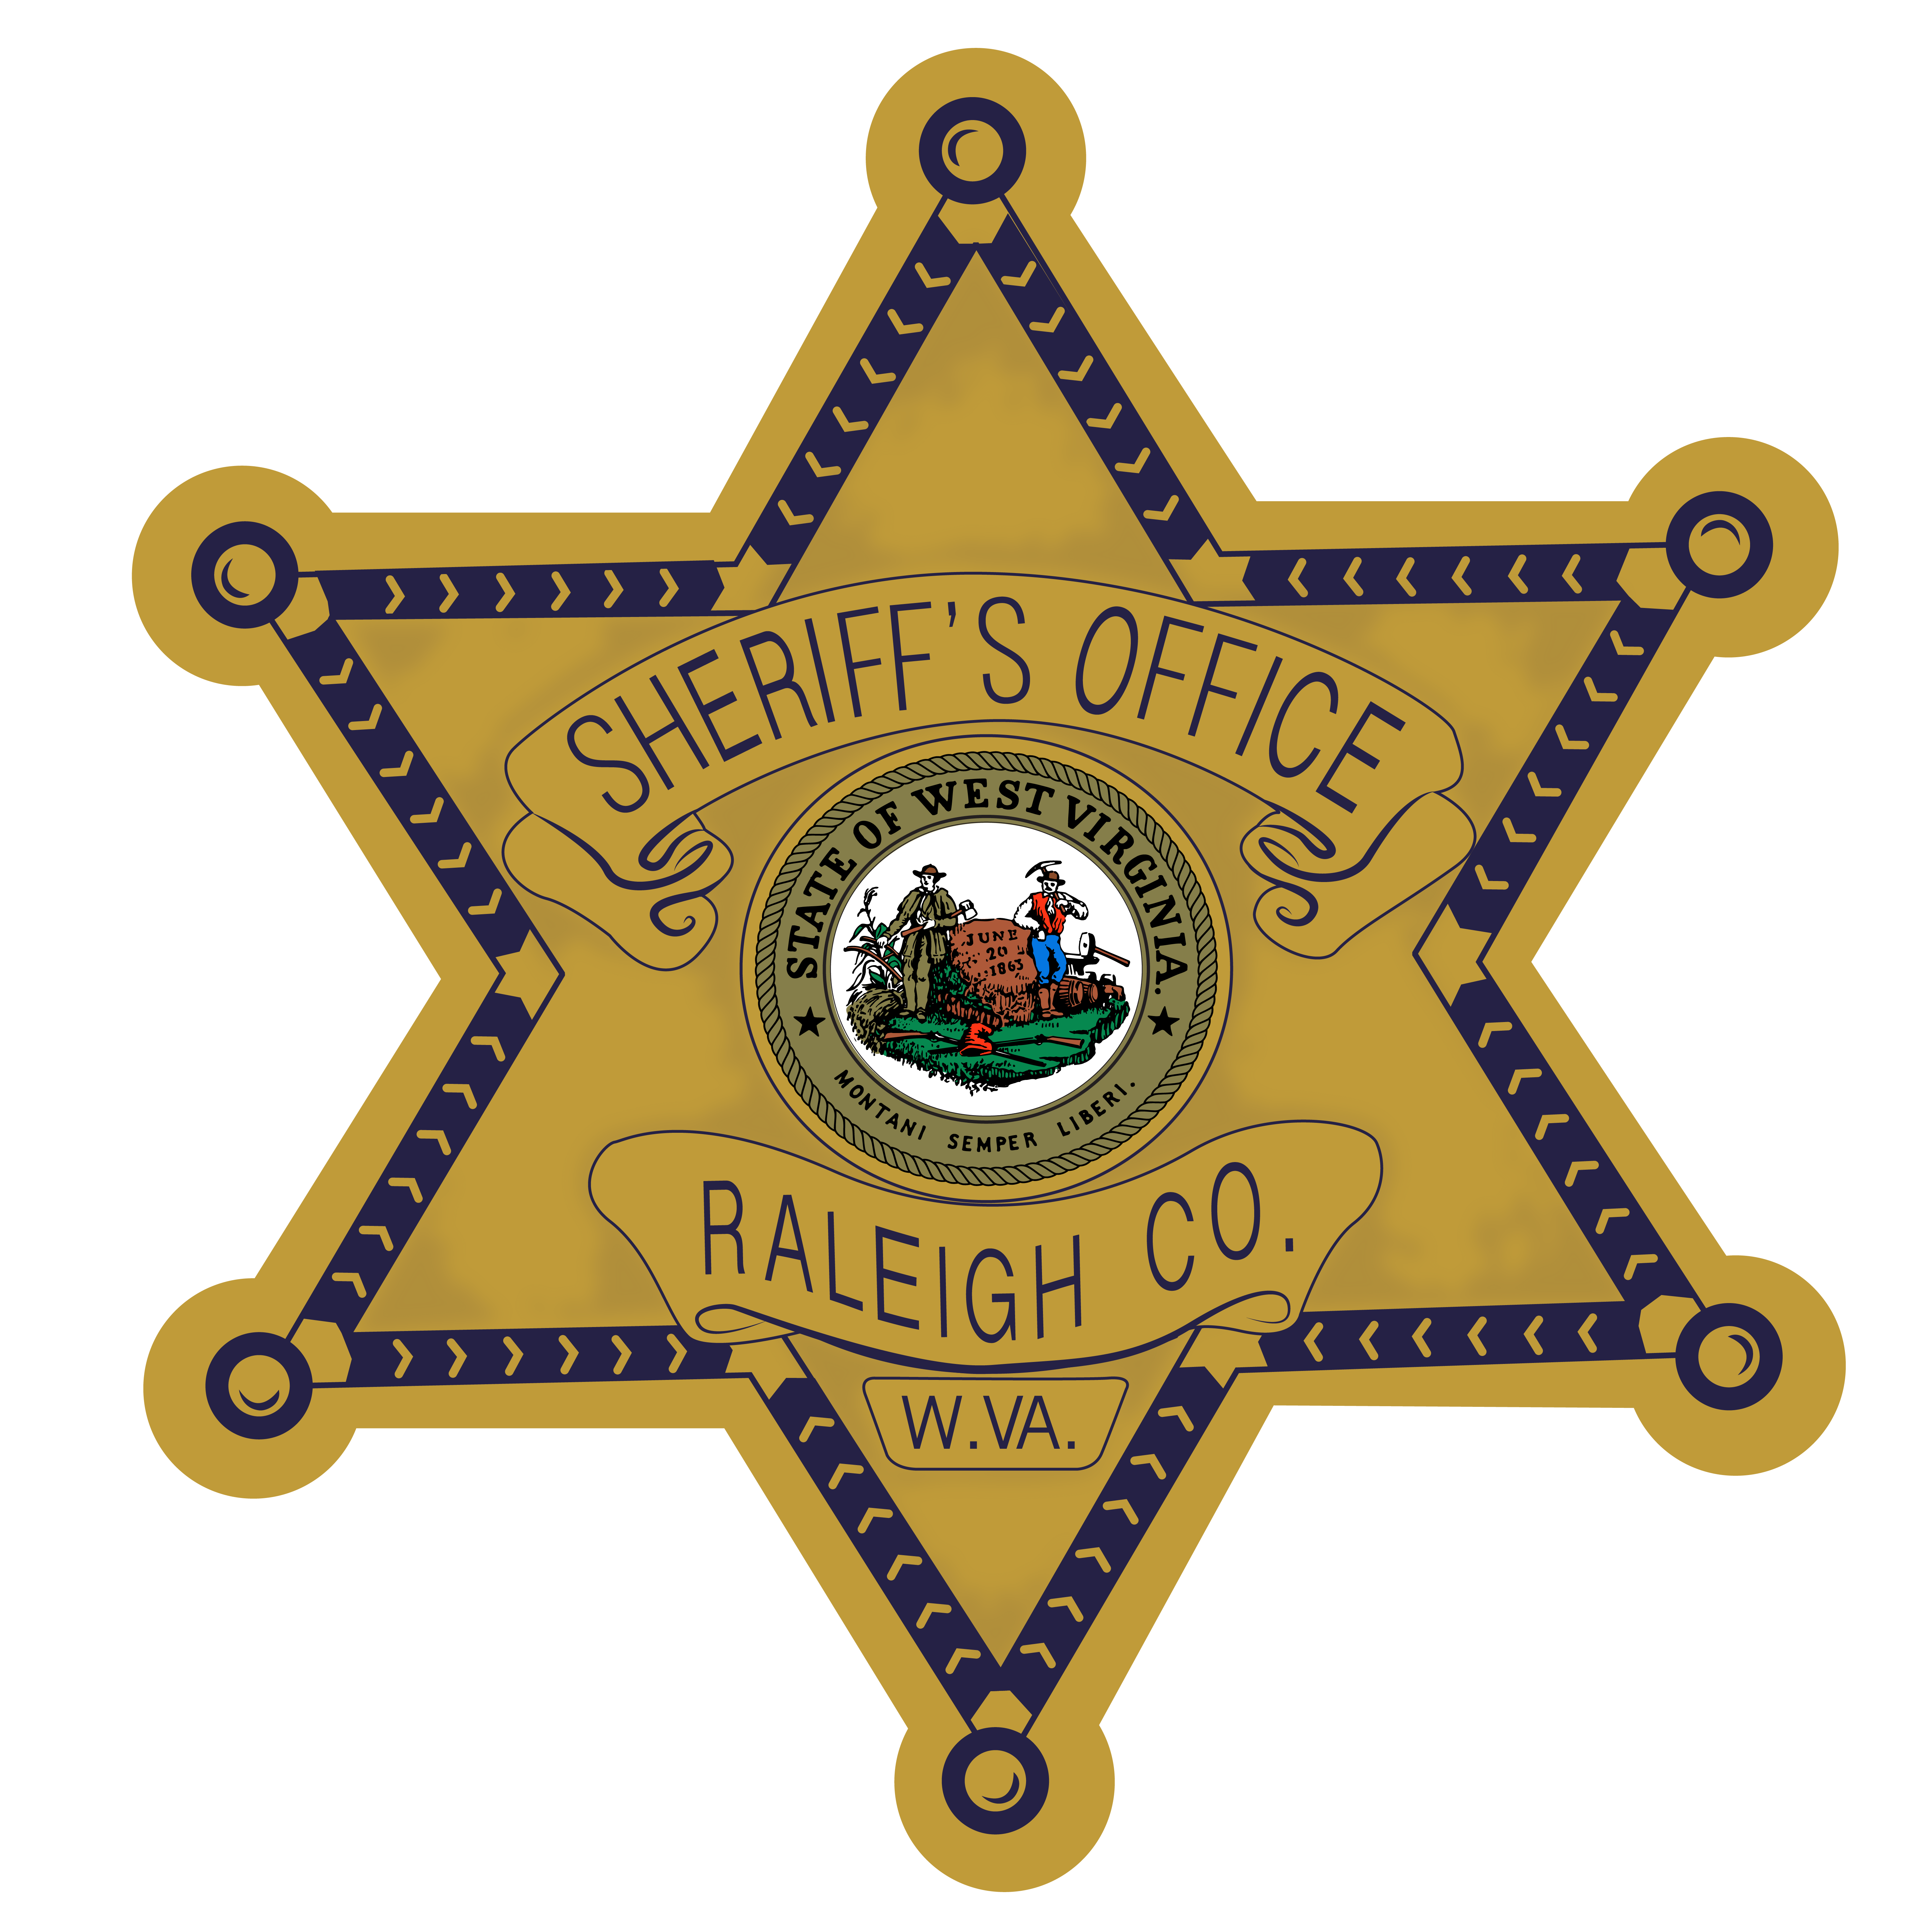 Raleigh County Sheriff's Office - Raleigh County, West Virginia